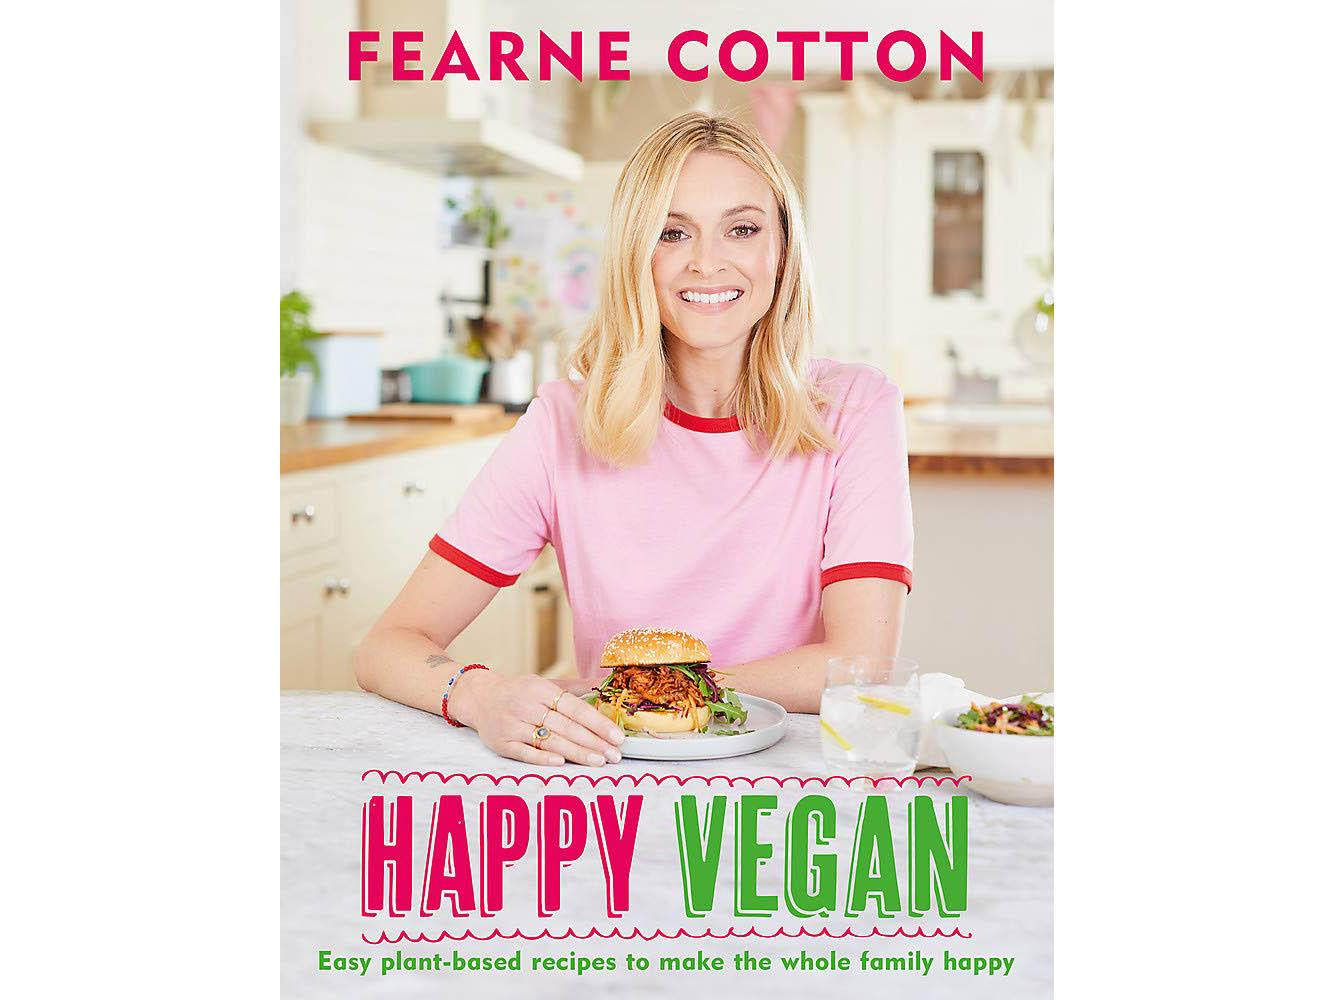 'Happy Vegan: Easy plant-based recipes to make the whole family happy' by Fearne Cotton. Published by Seven Dials: £13.46, Amazon